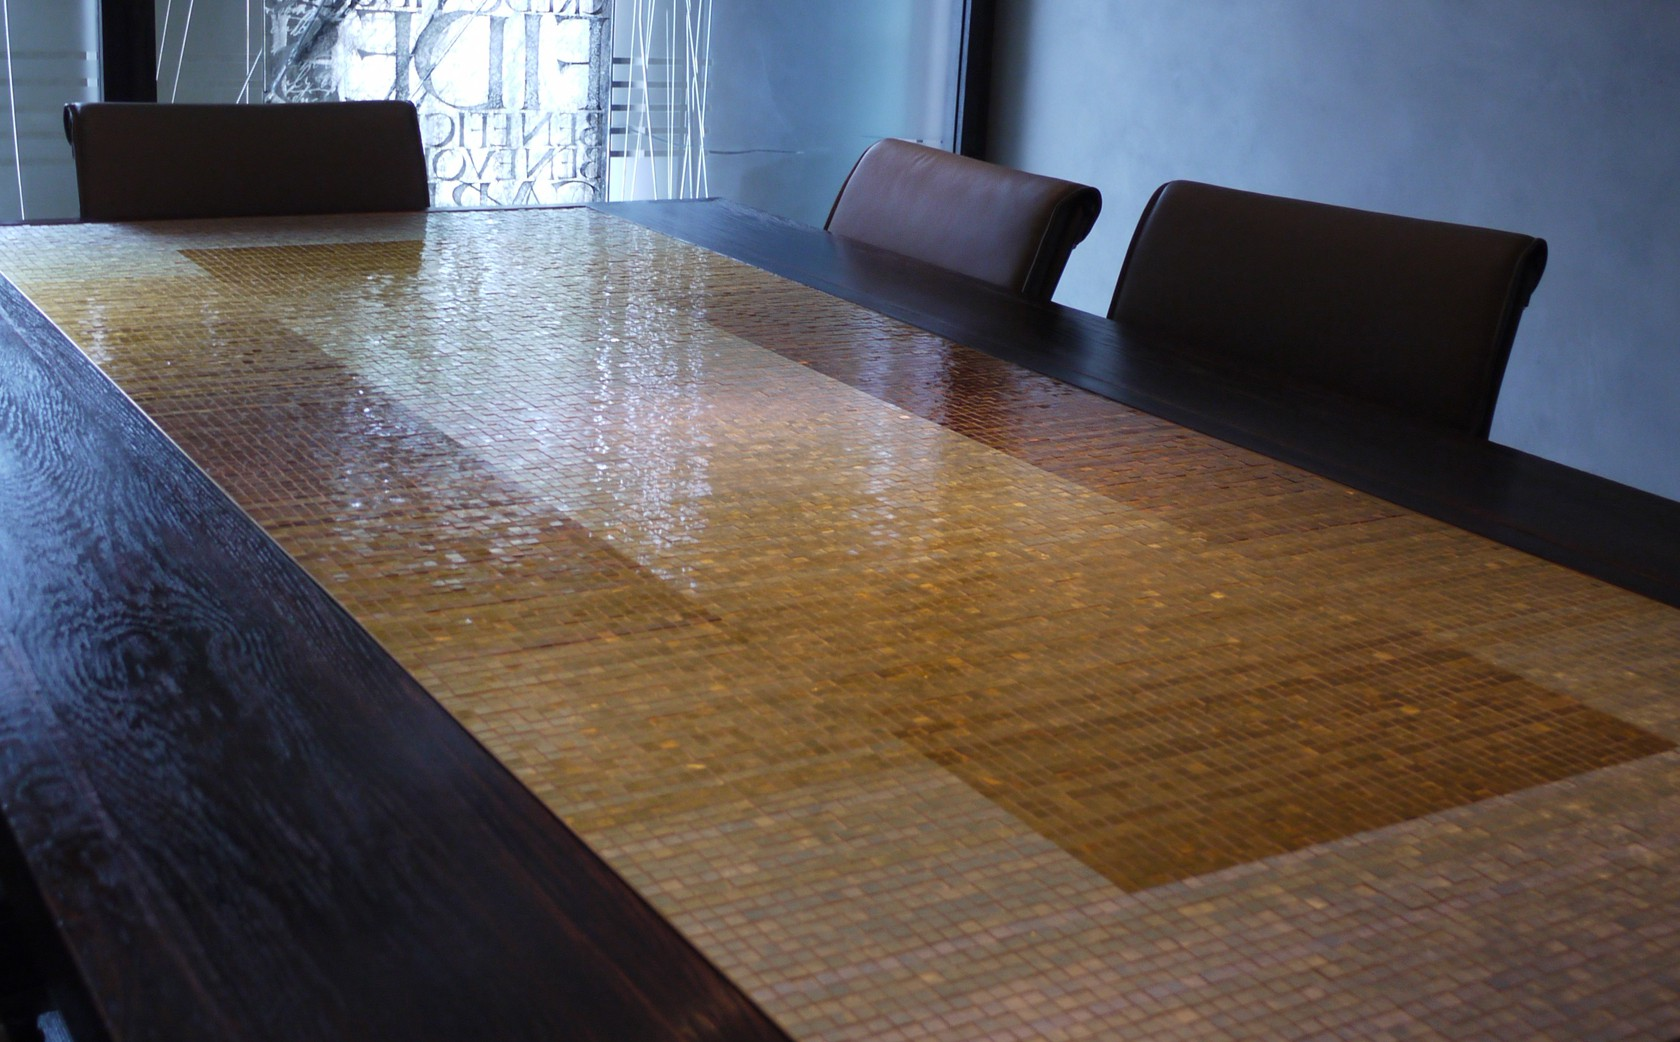 Previous mosaic - Boardroom table top